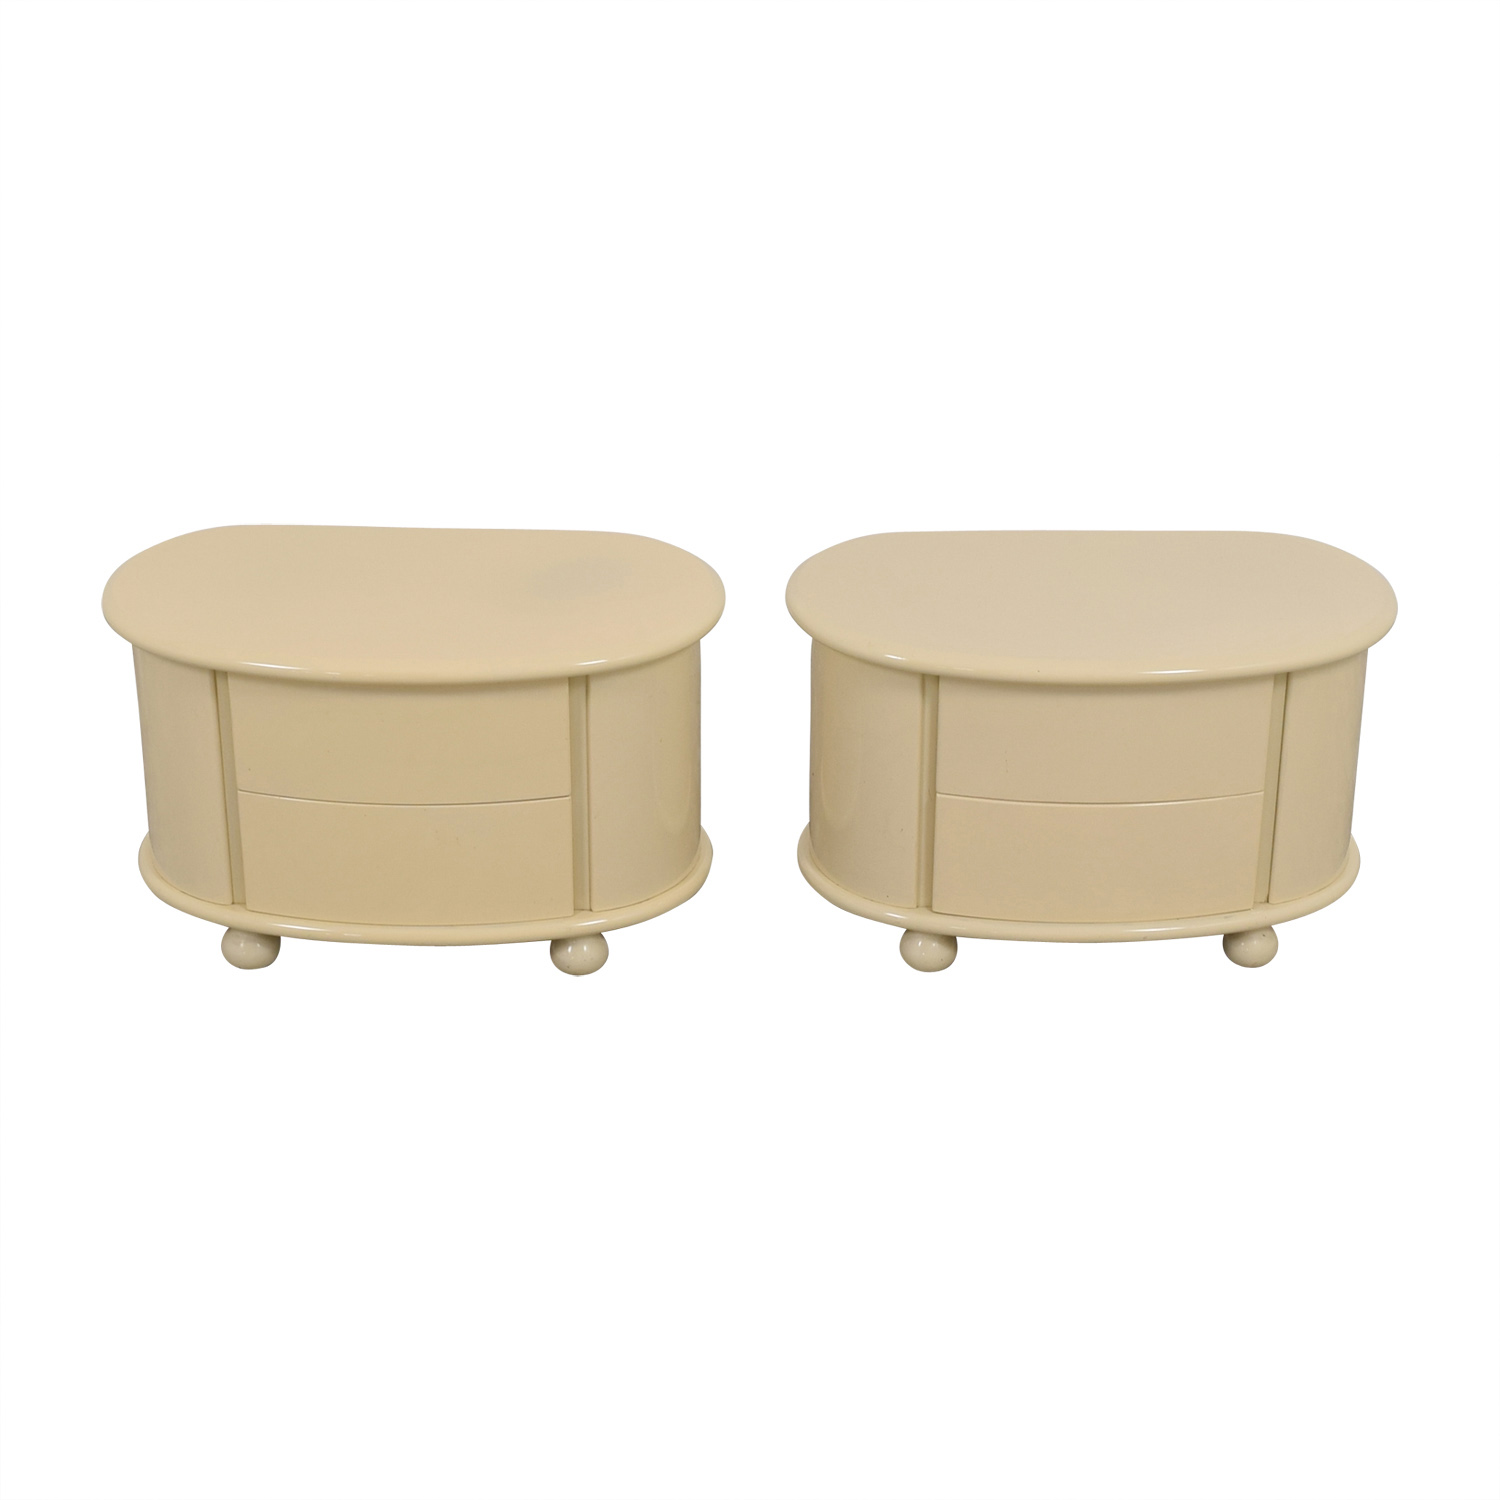 Vanilla Lacquered Oval Two-Drawer Night Tables / End Tables